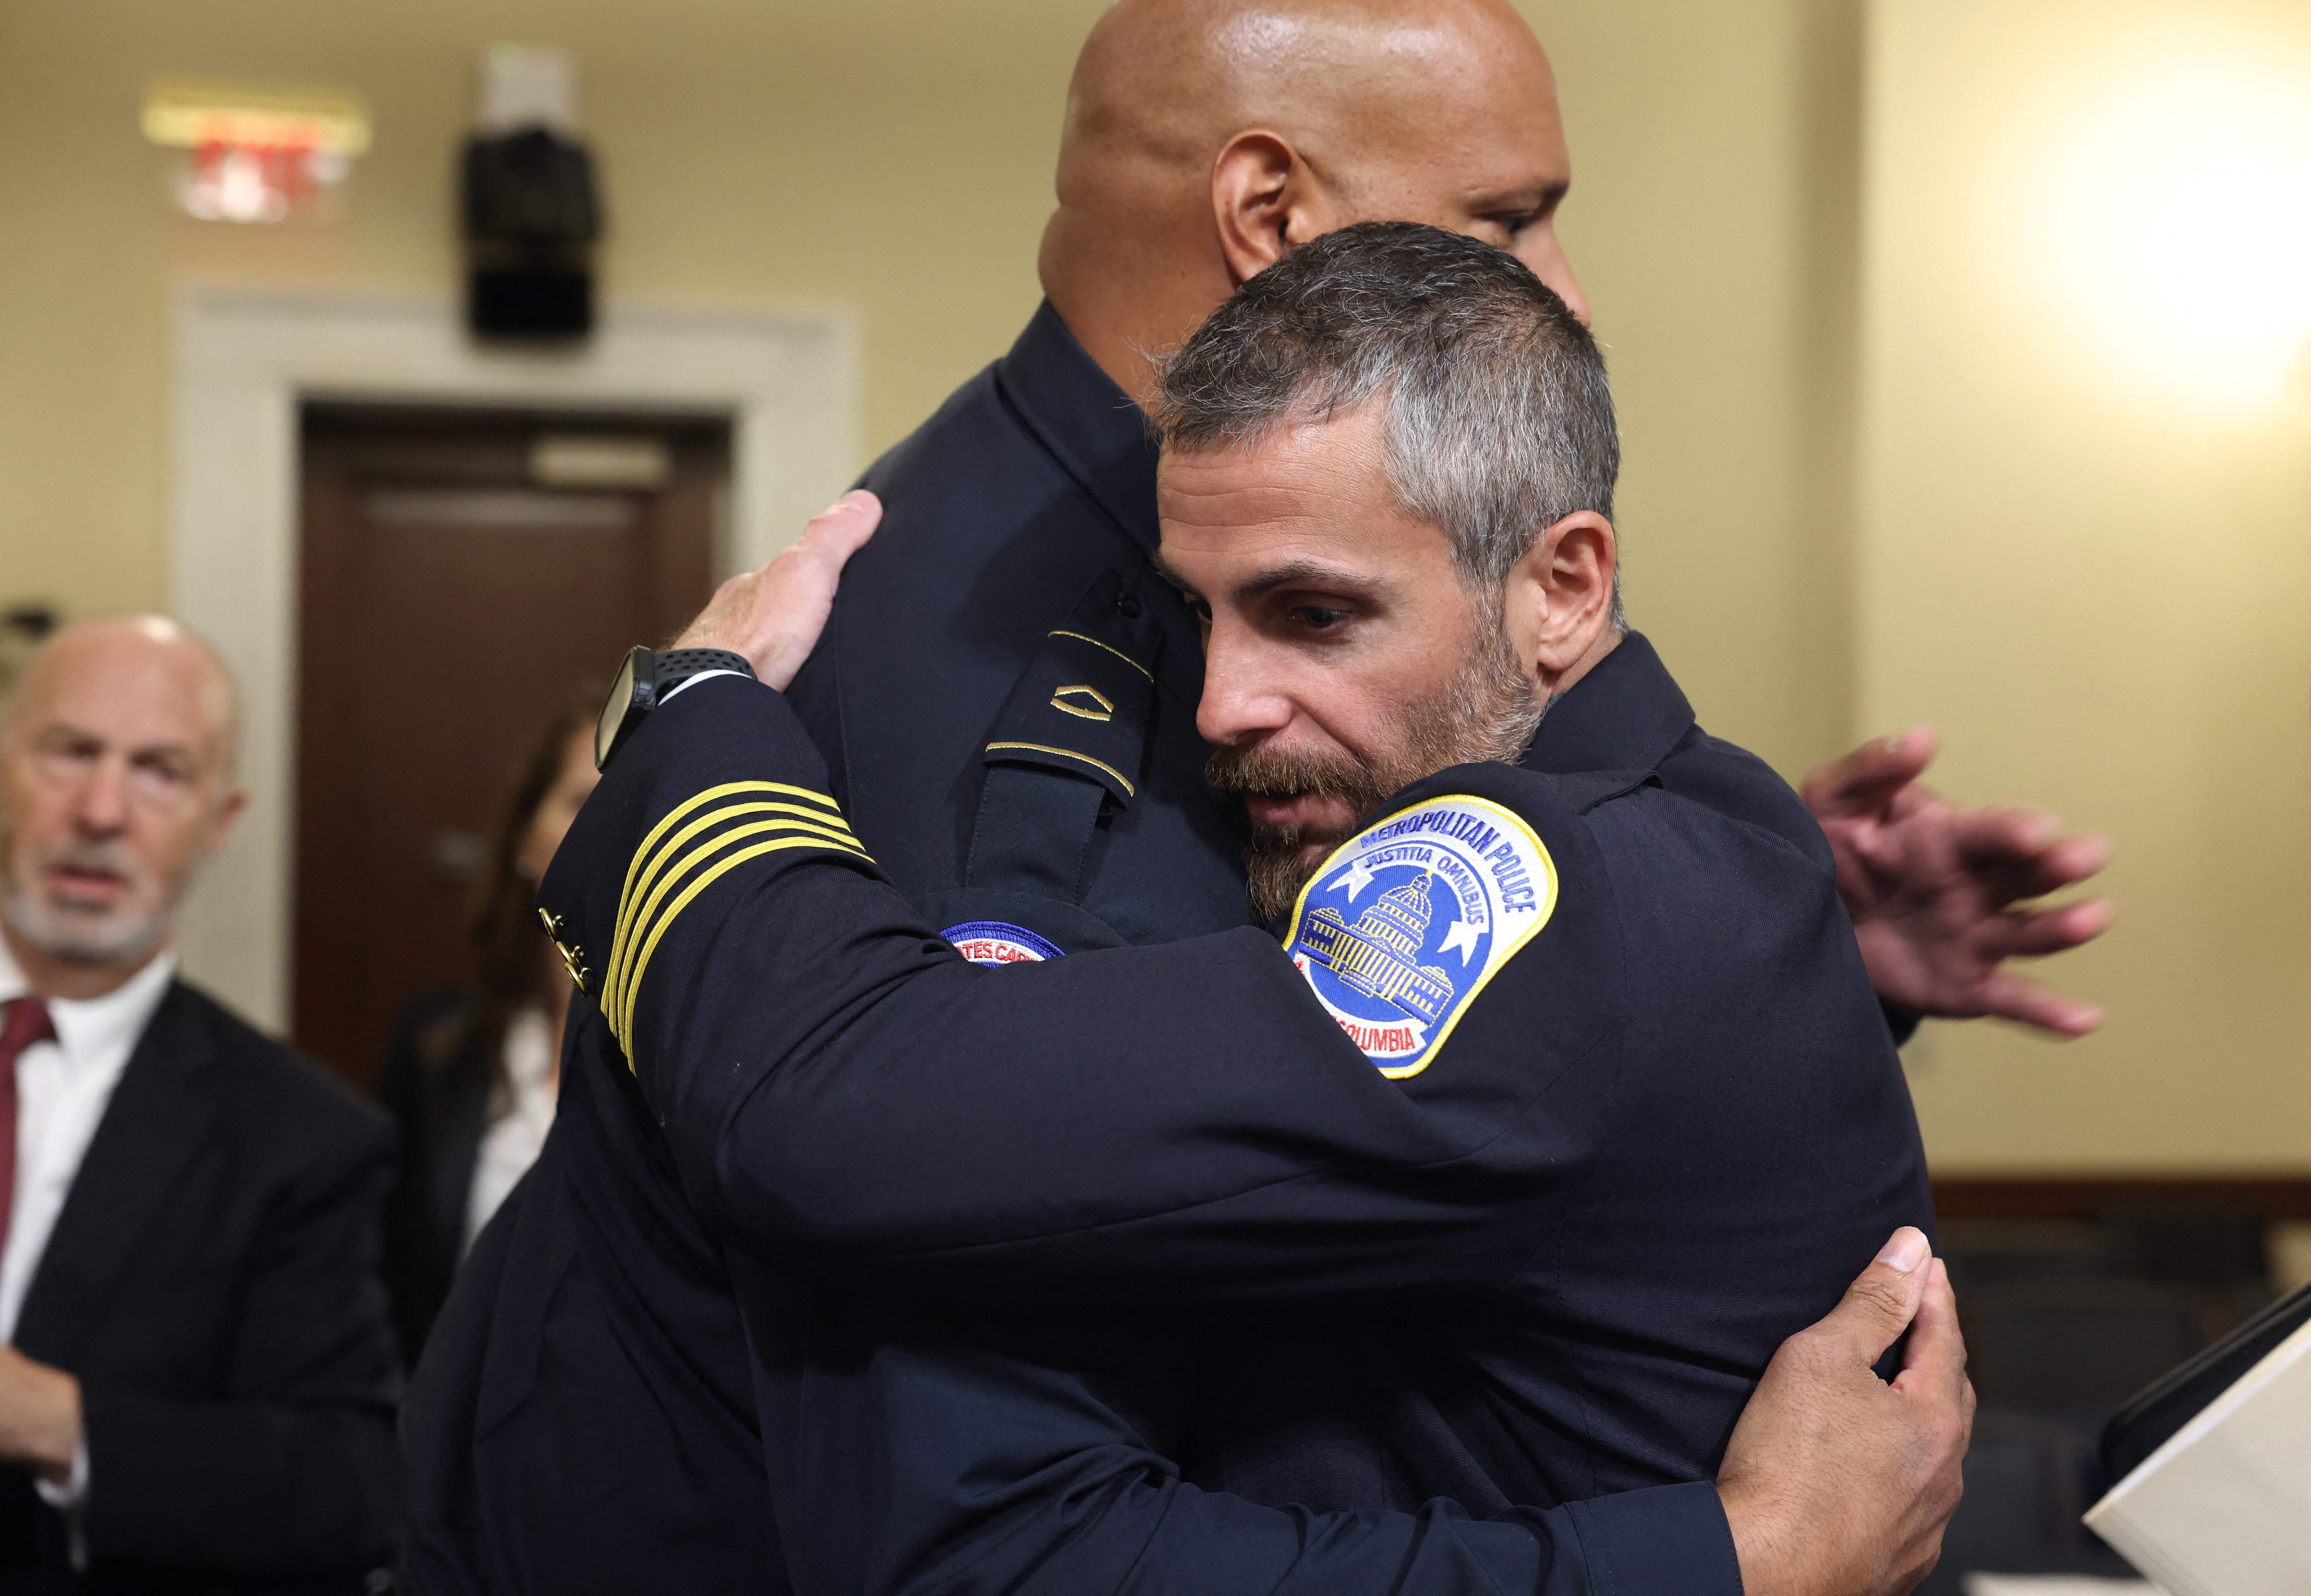 Officer Harry Dunn and Officer Michael Fanone embrace.